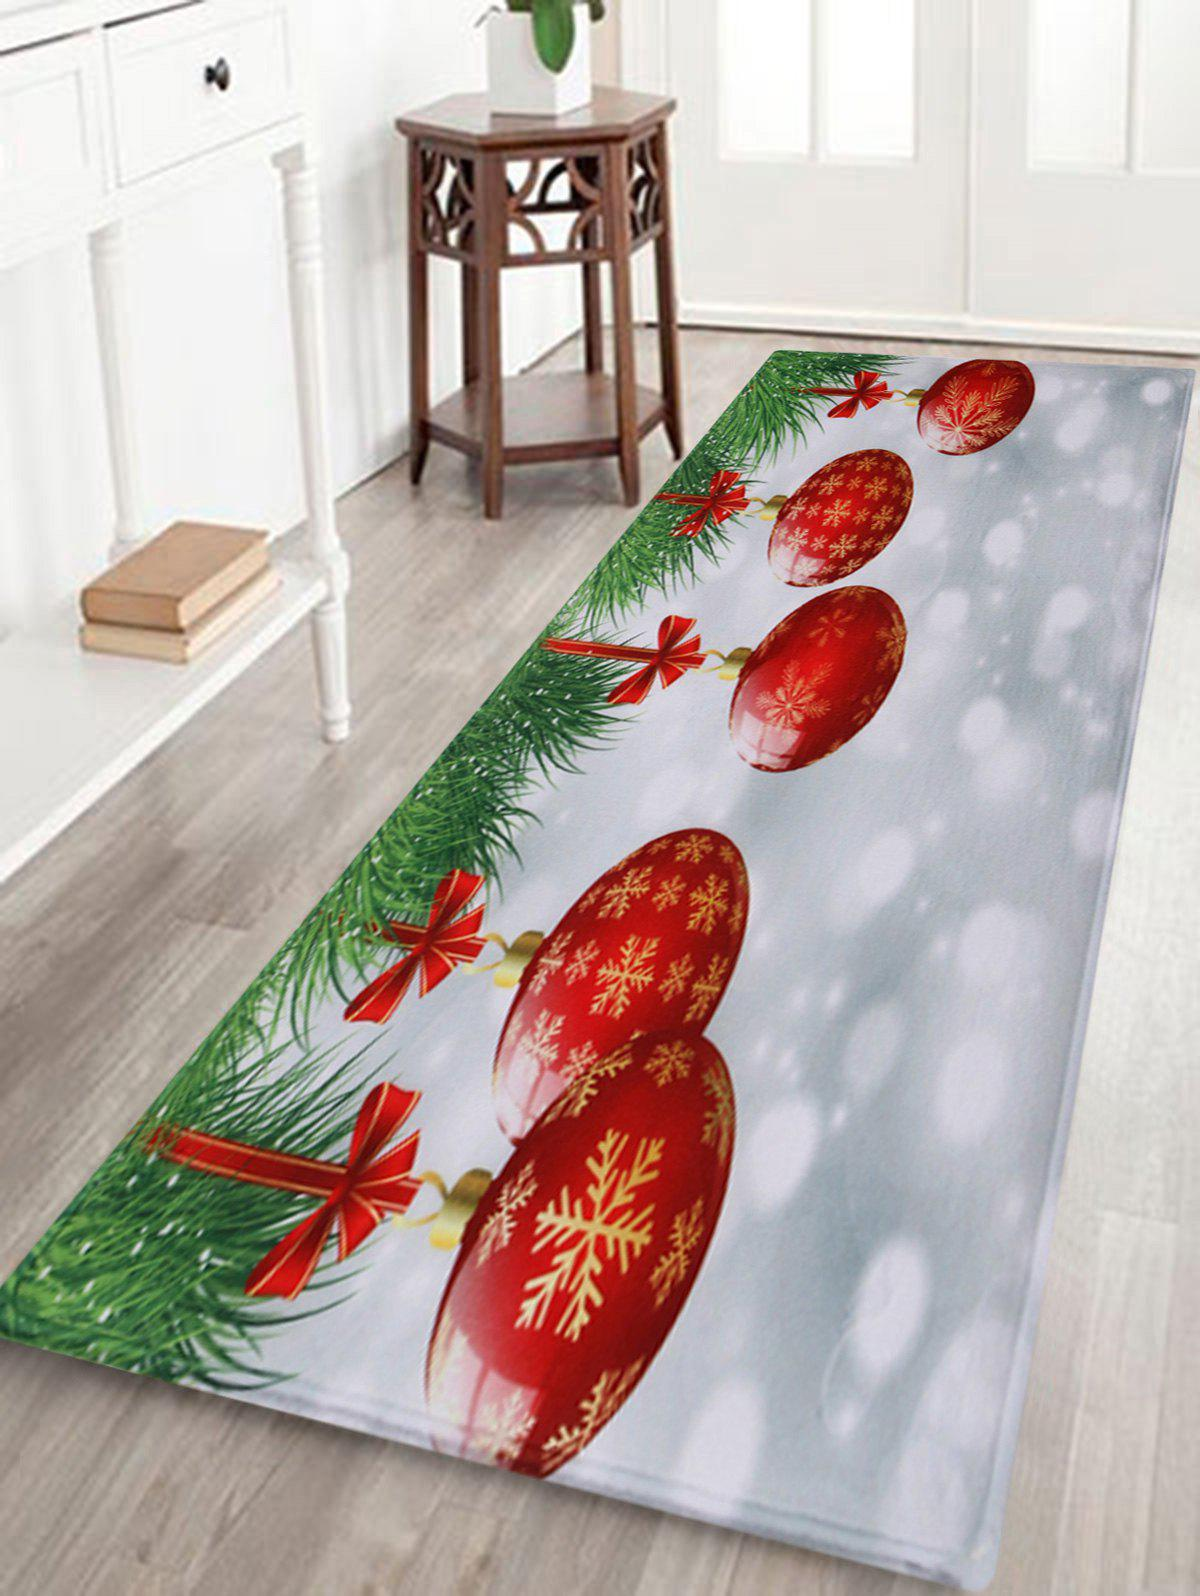 Christmas Baubles Pattern Indoor Outdoor Area Rug - COLORMIX W24 INCH * L71 INCH